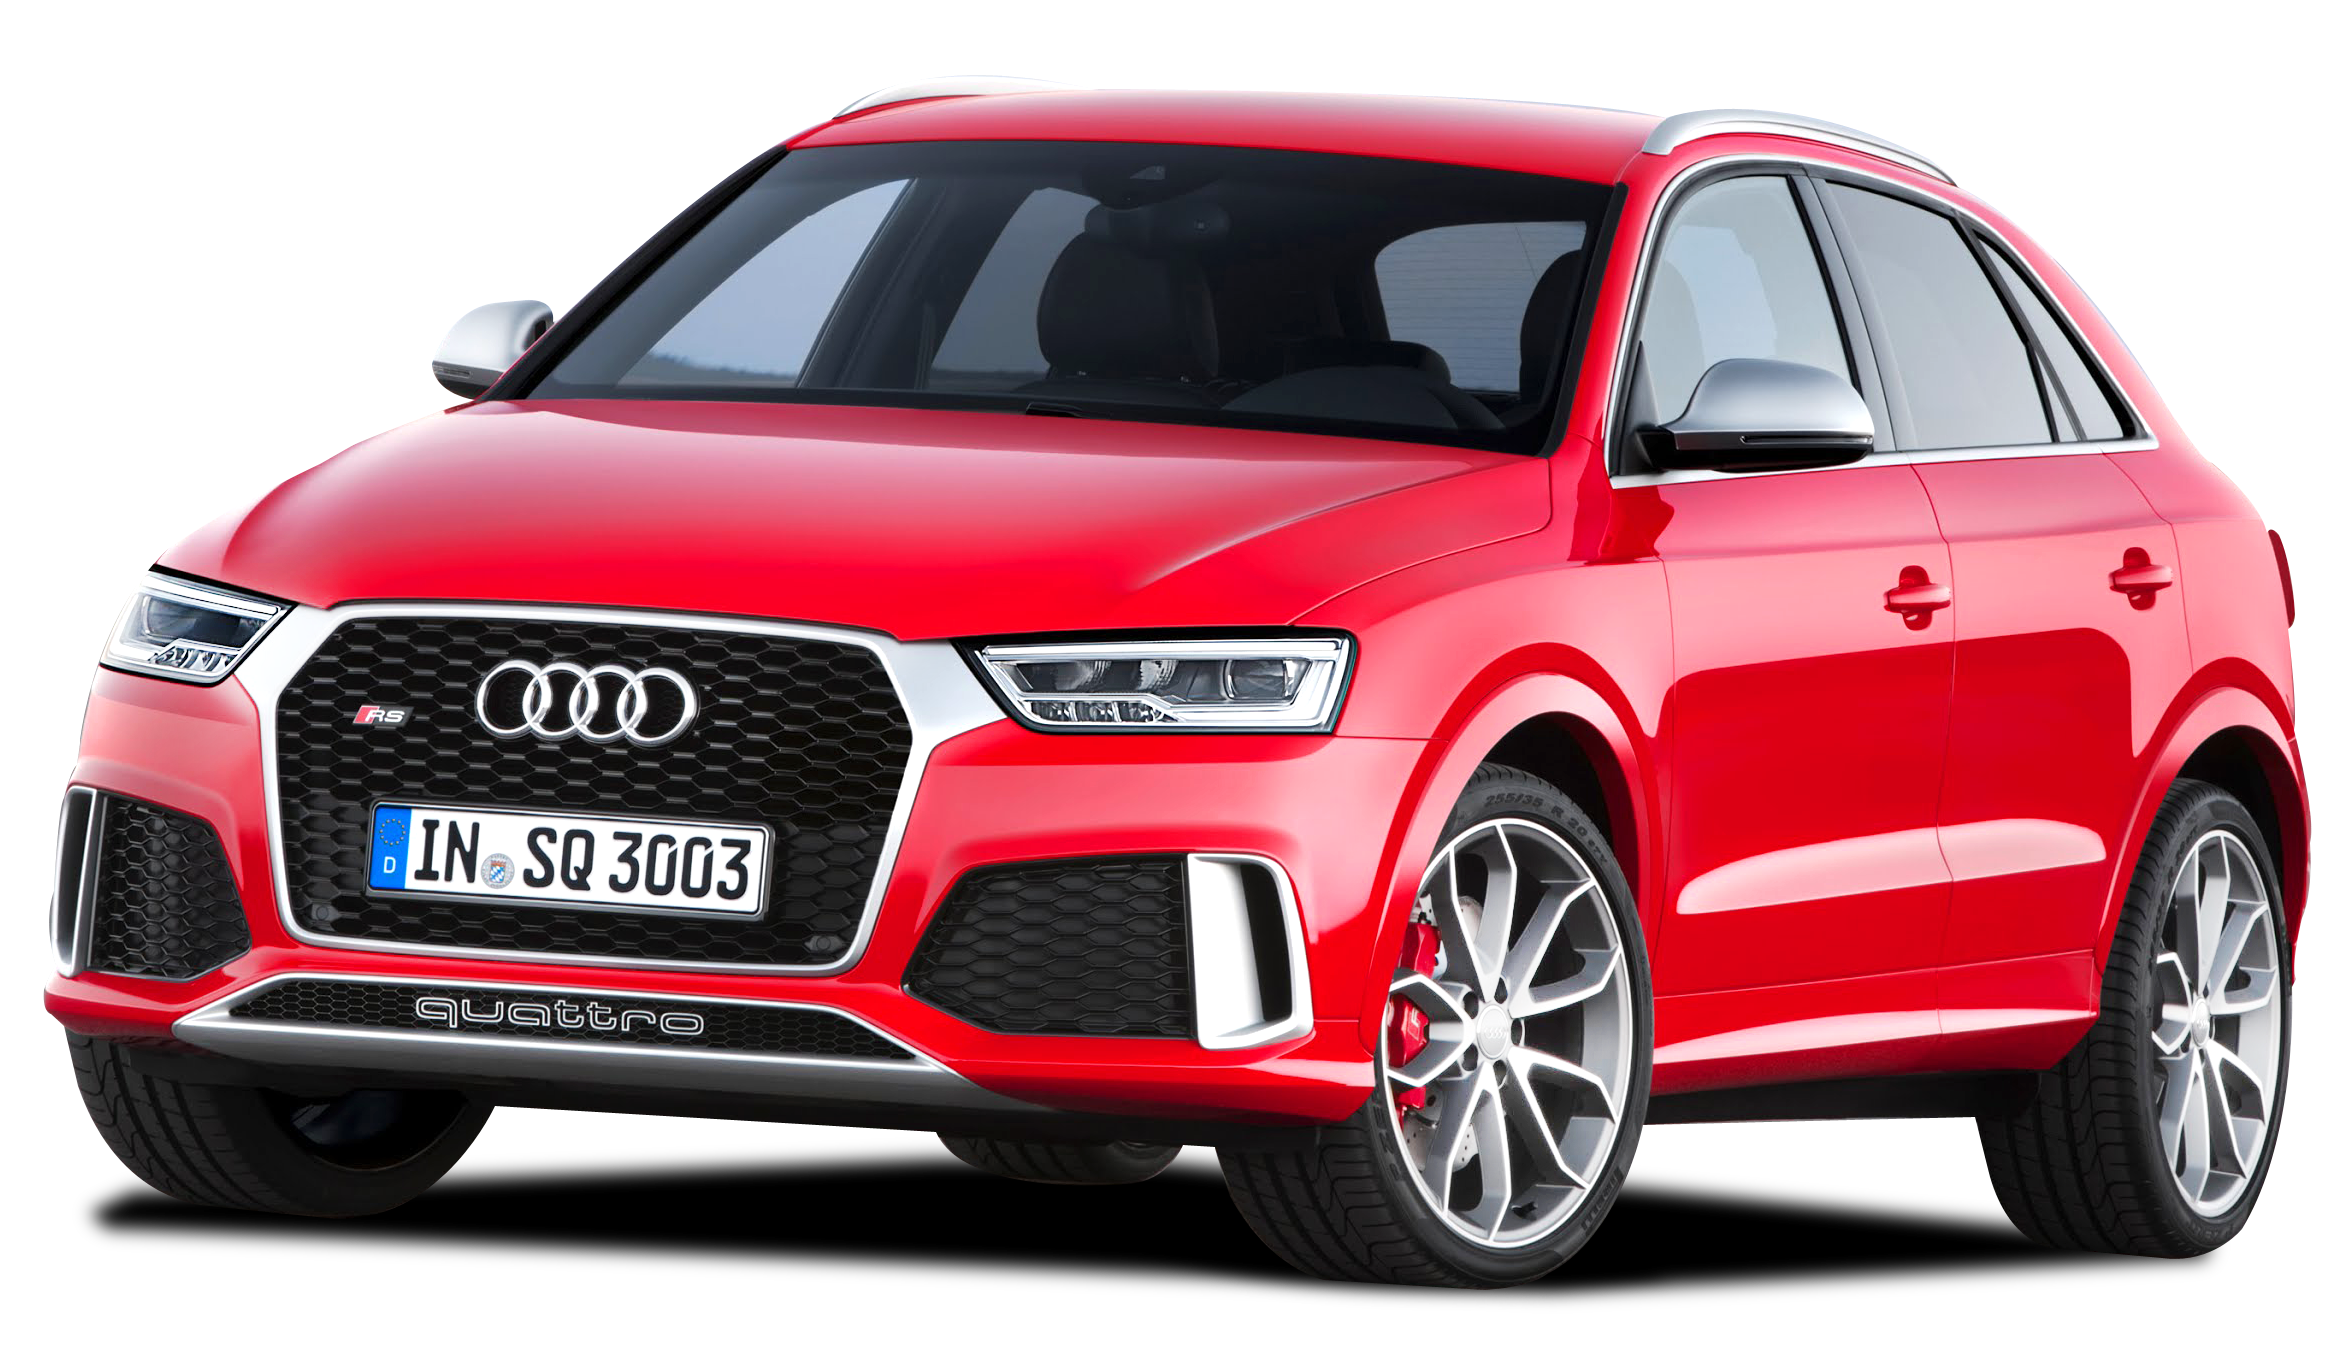 Audi RS Q3 PNG Image Red Download image #45299